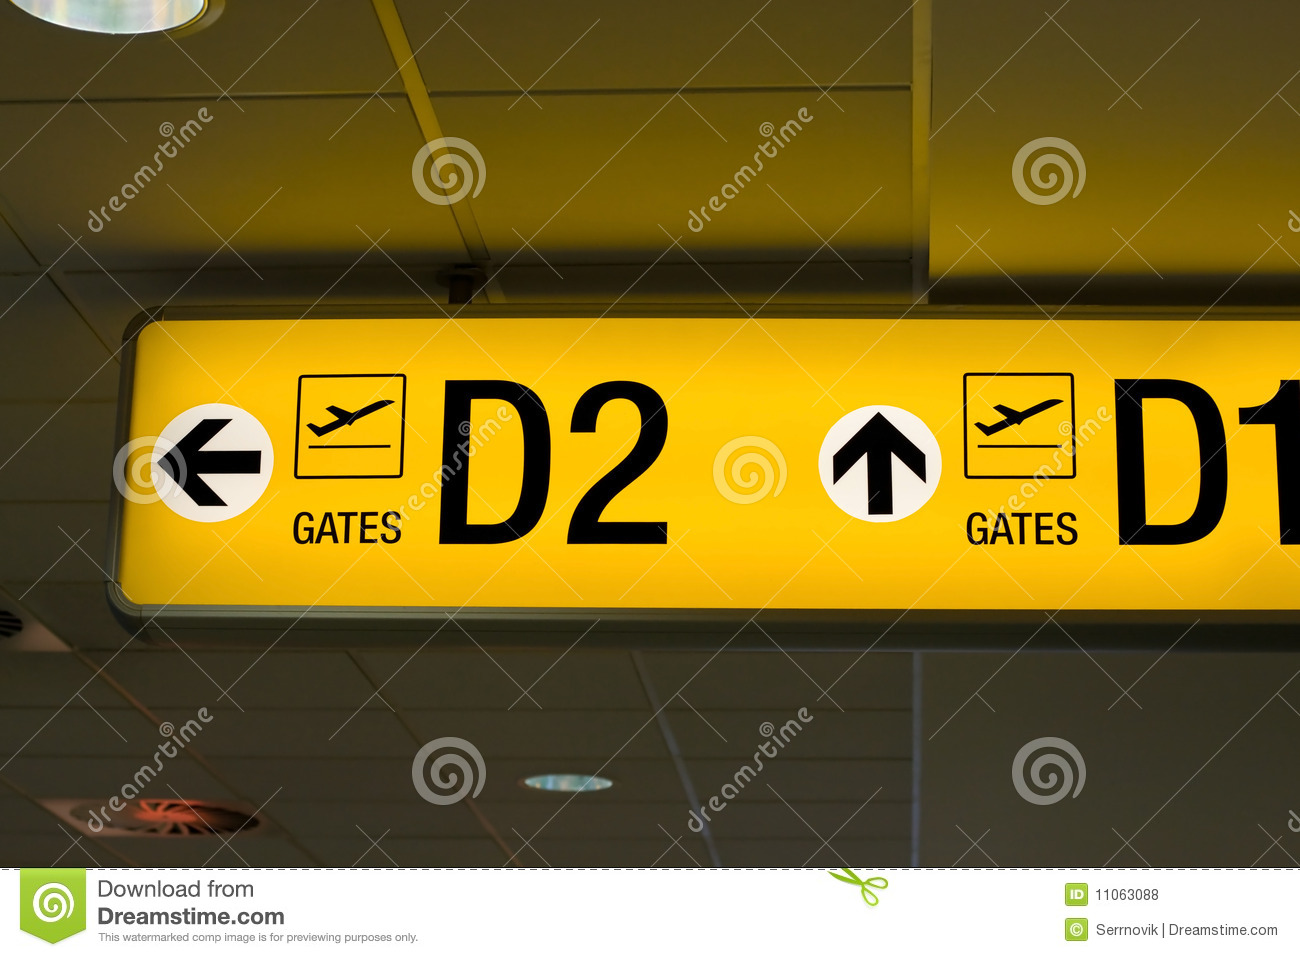 airport gate clipart - photo #30